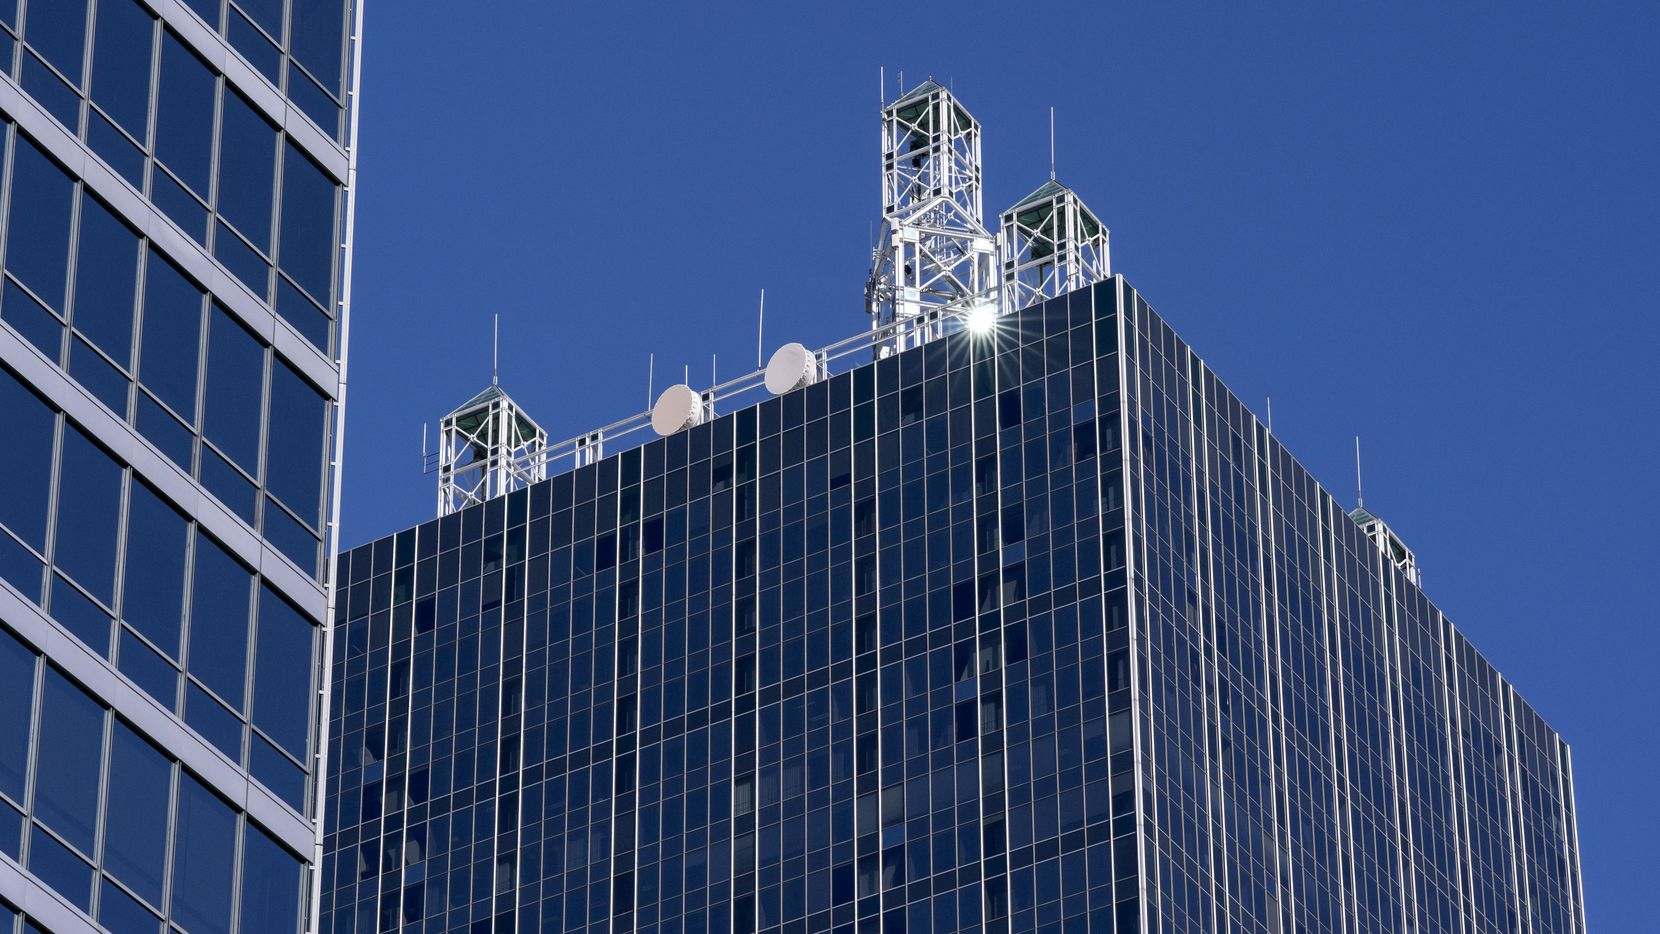 The 56-story Renaissance Tower on Elm Street, best known for its double X lighting and decorative towers on top, is downtown Dallas' second-largest office building.